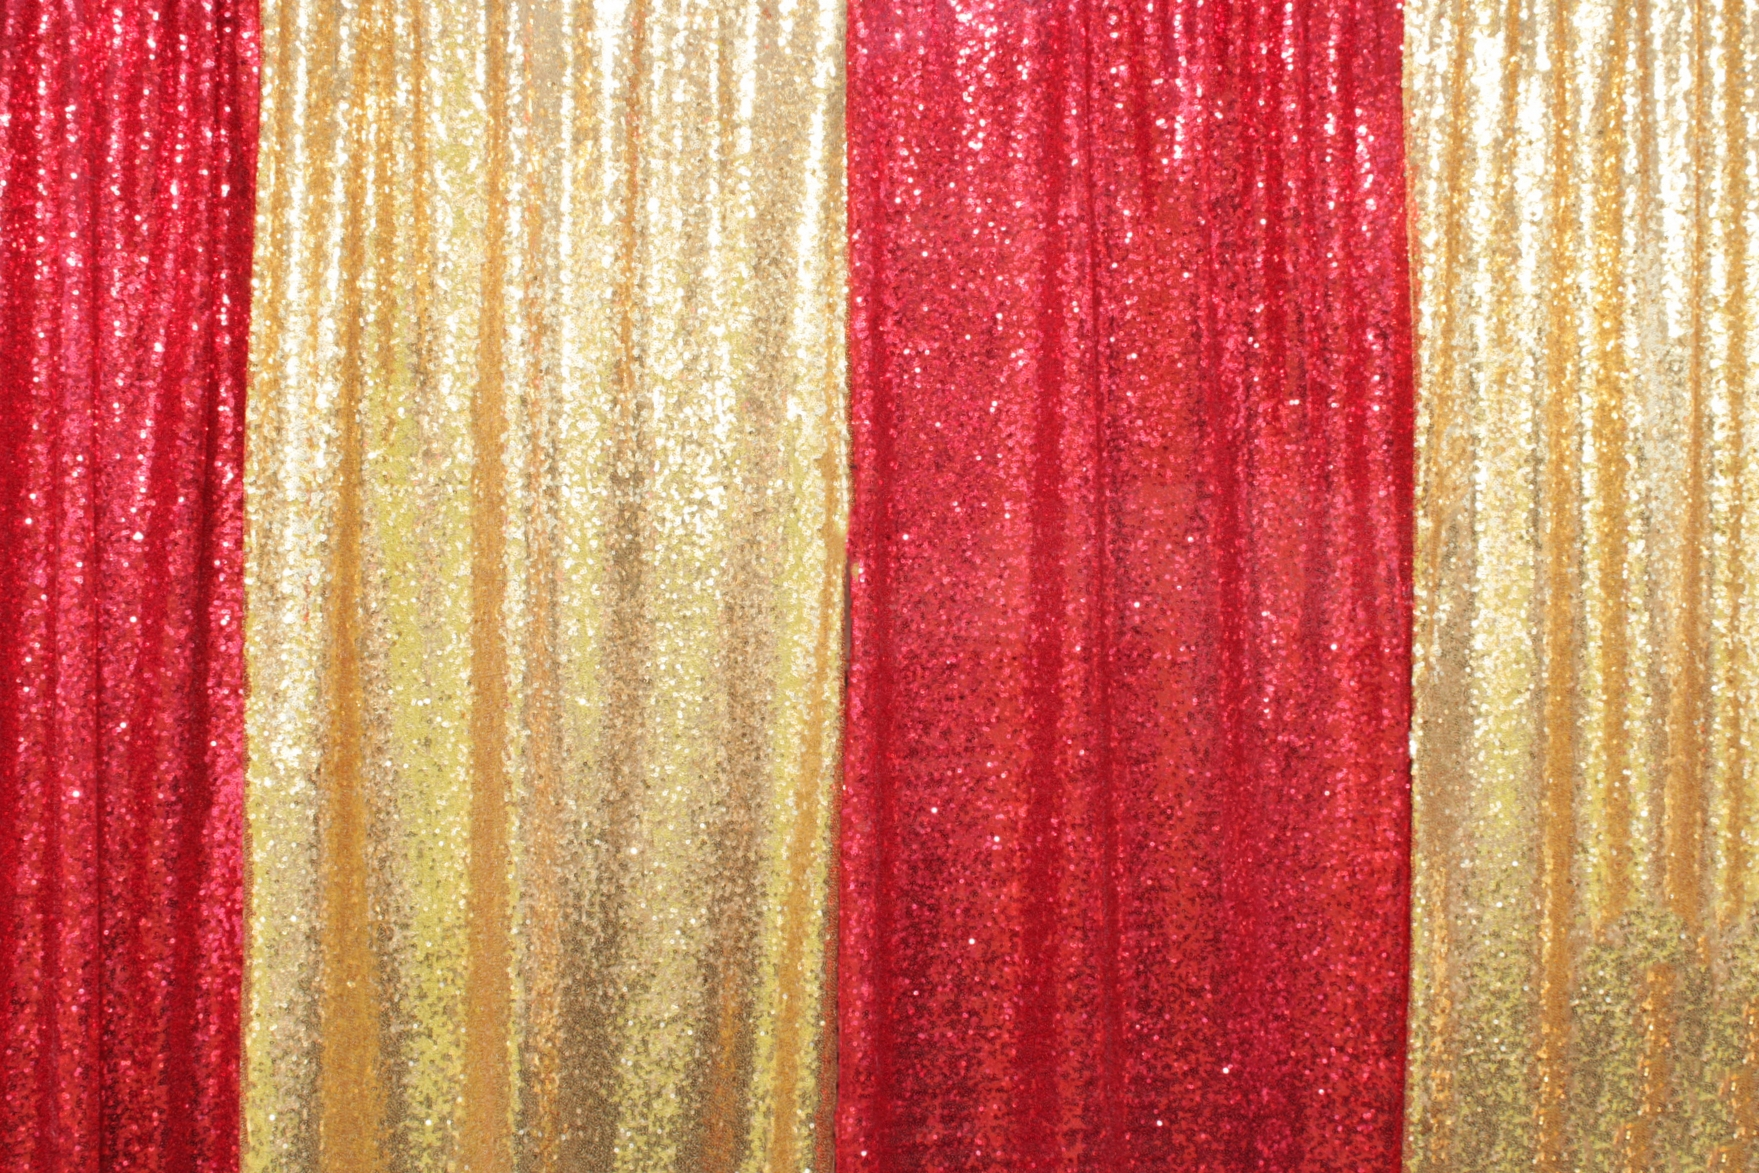 Red & Gold Sequin Panels